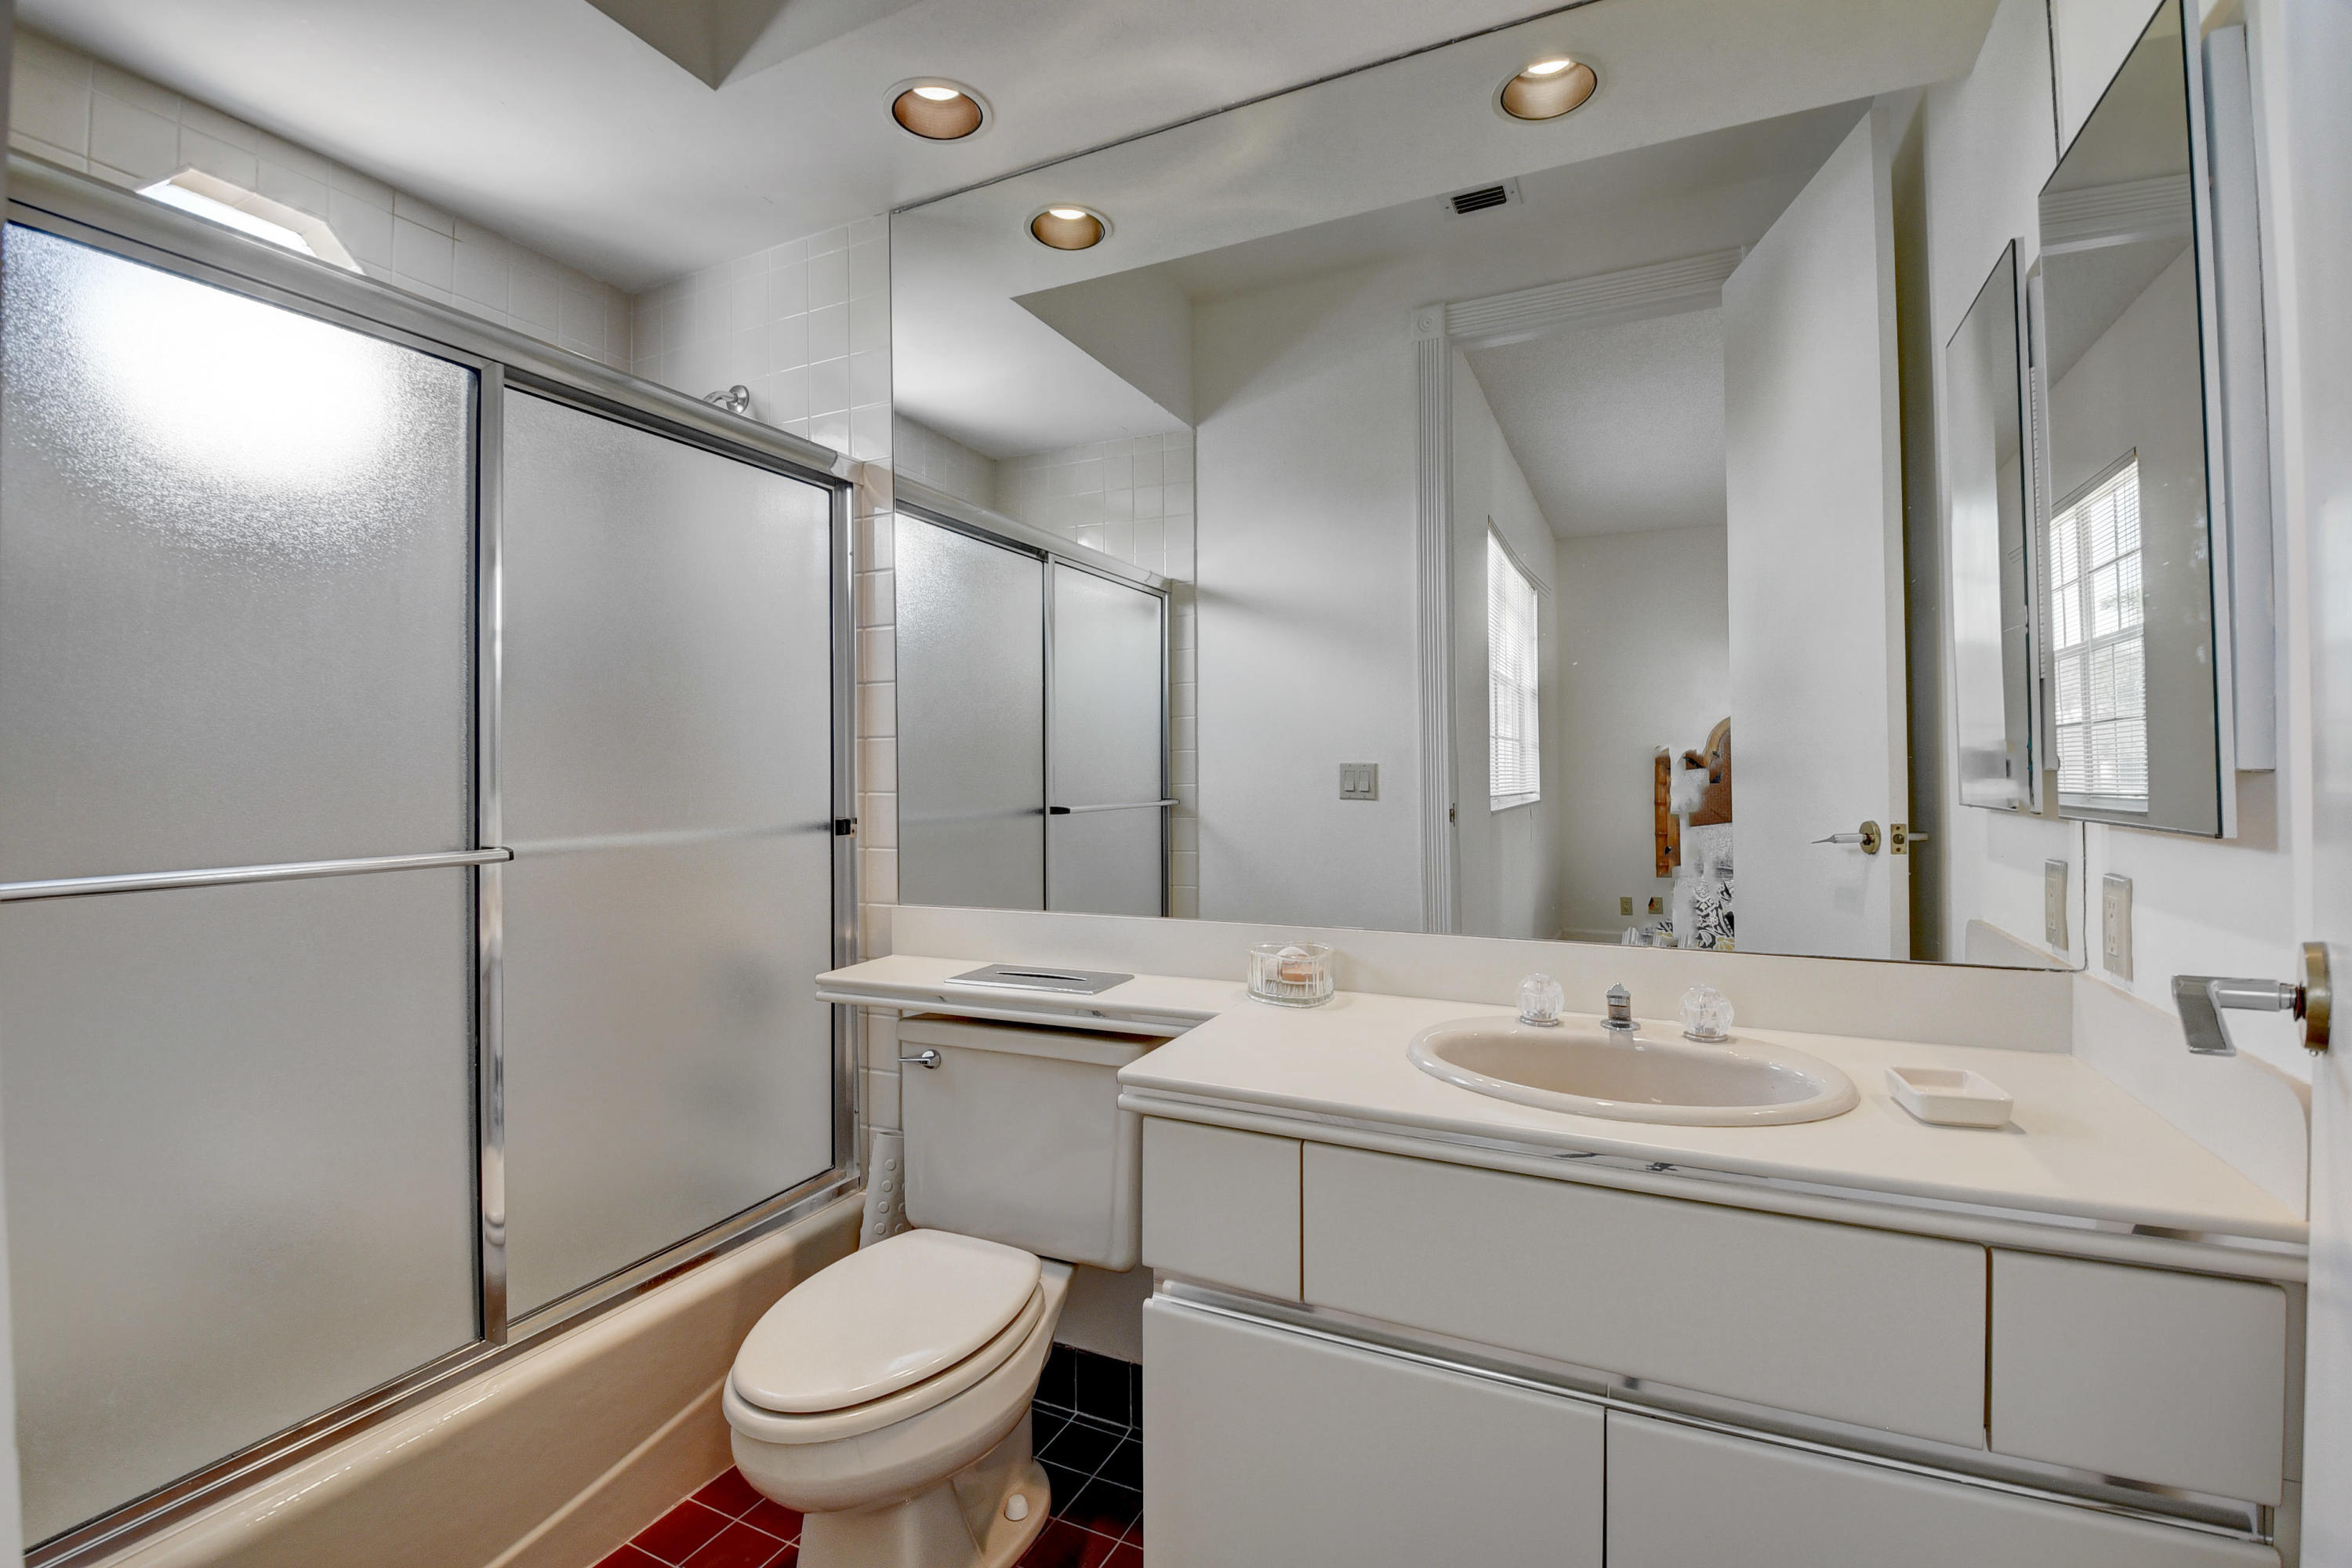 4th Bed Bath On Suite